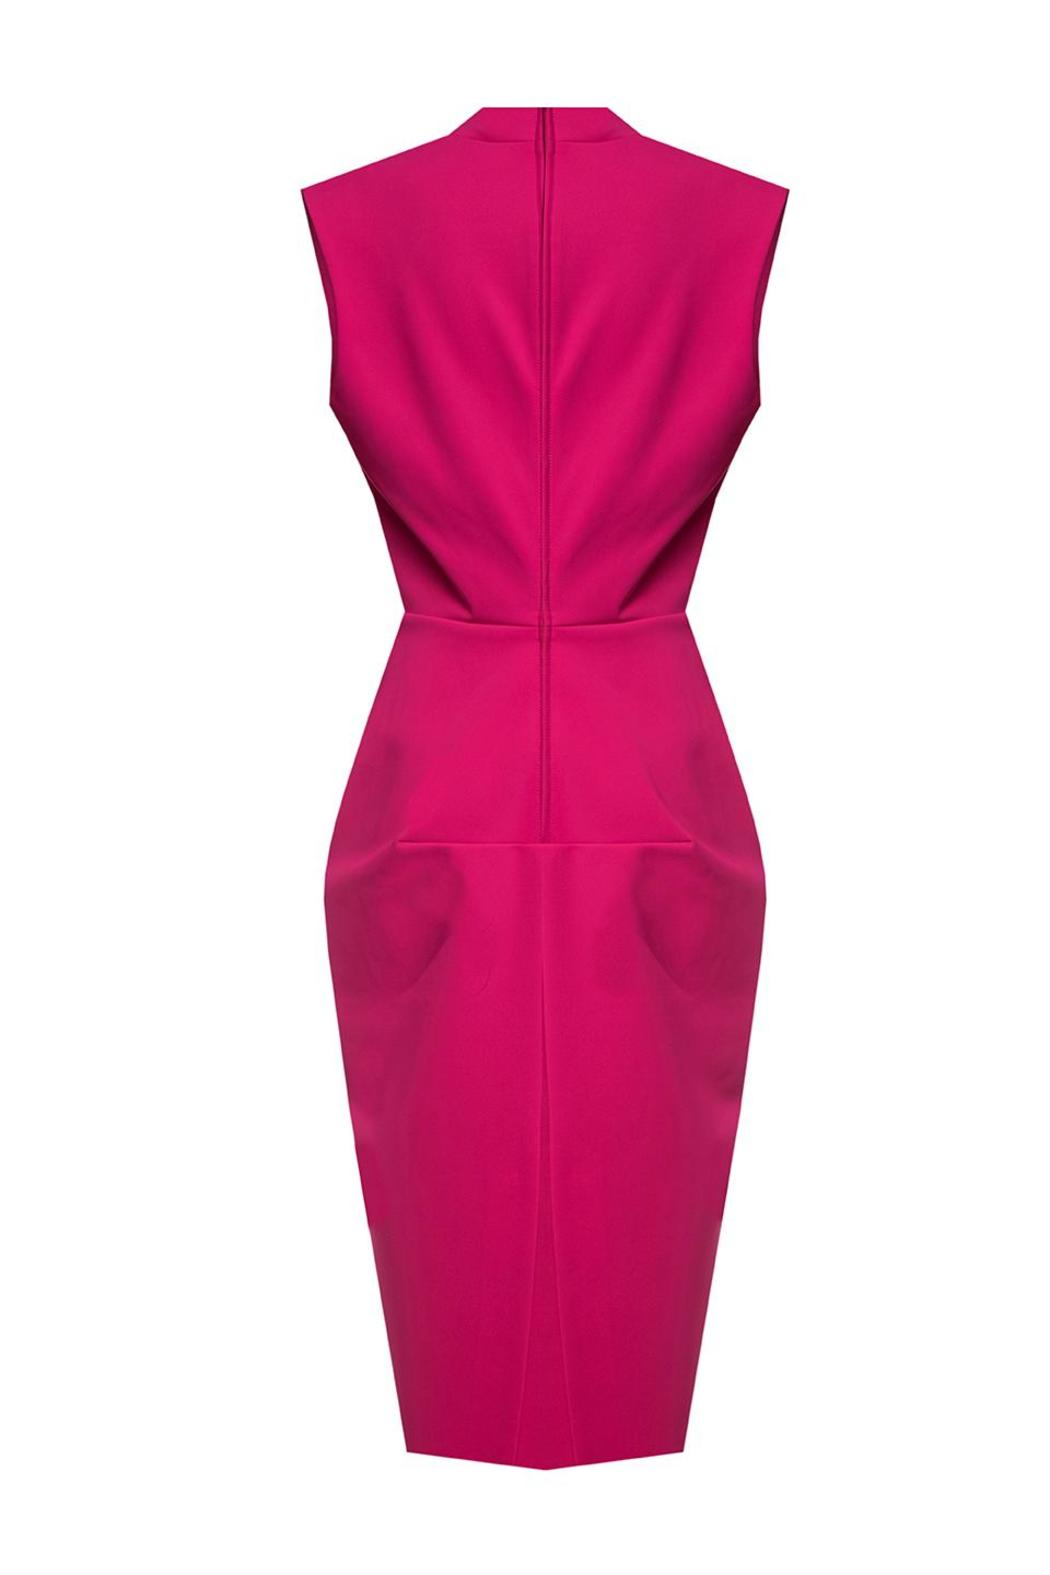 Greta Constantine Vanna Cerise Dress - Side Cropped Image